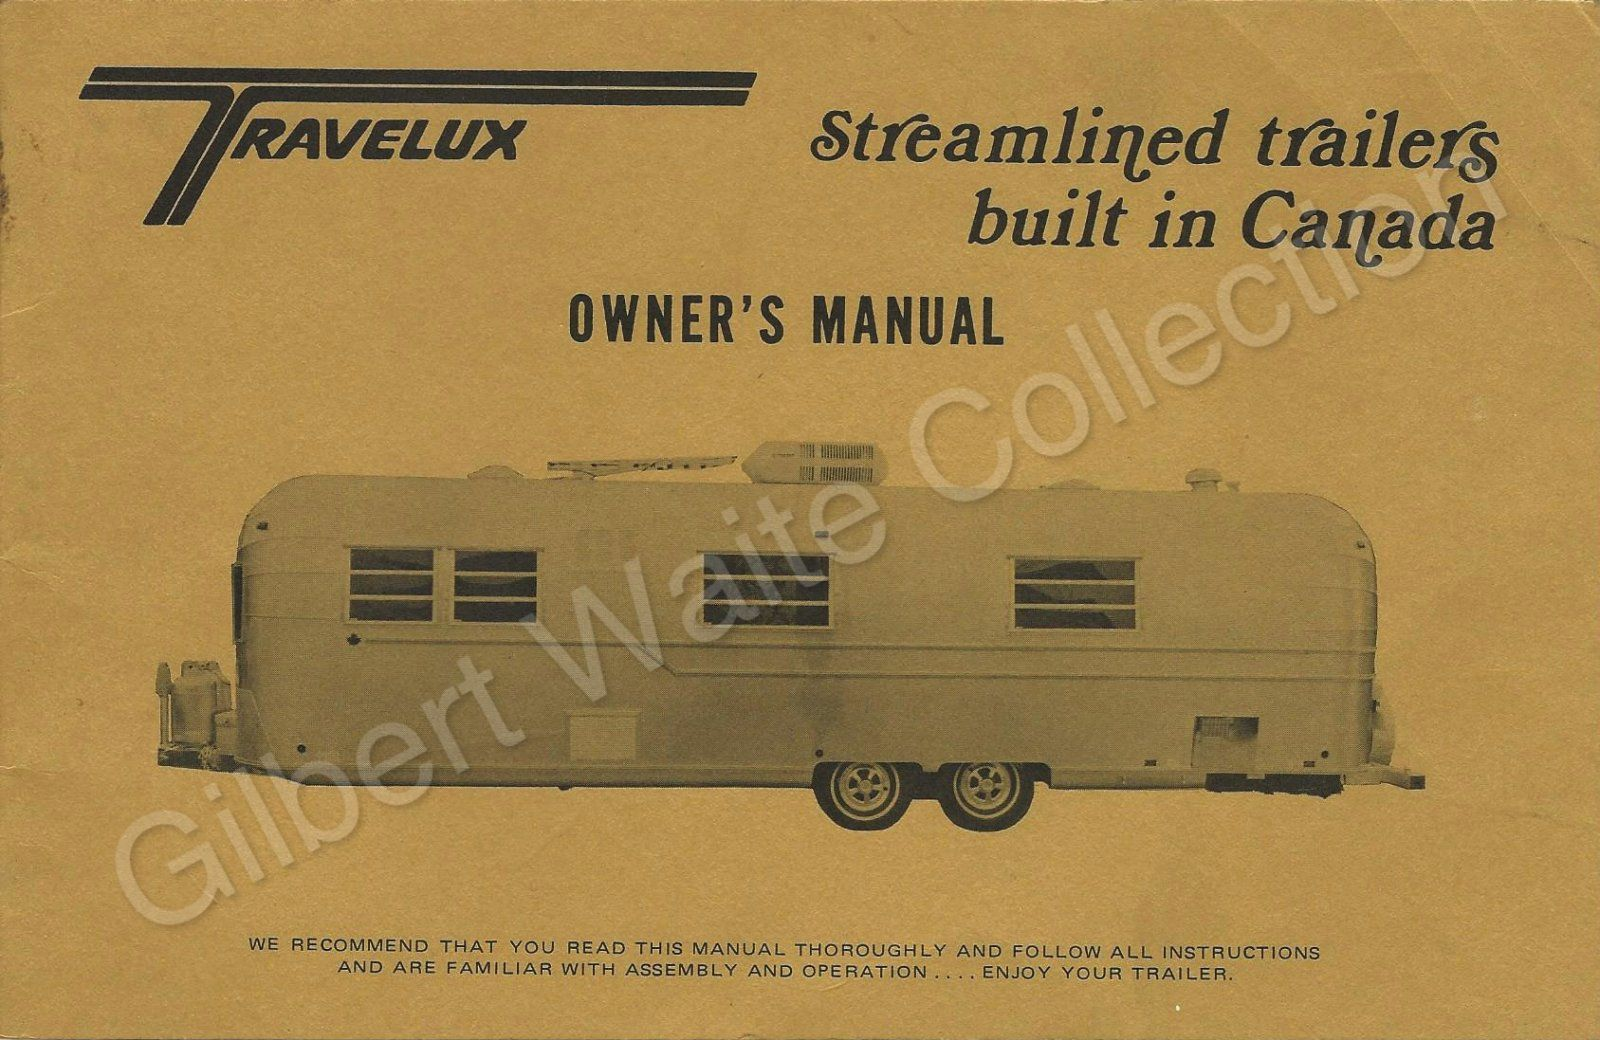 owners manual front cover jpg 1600 x 1040 83 vintage rv rh pinterest com Nissan UD 1800 Manual Shop Manual Online